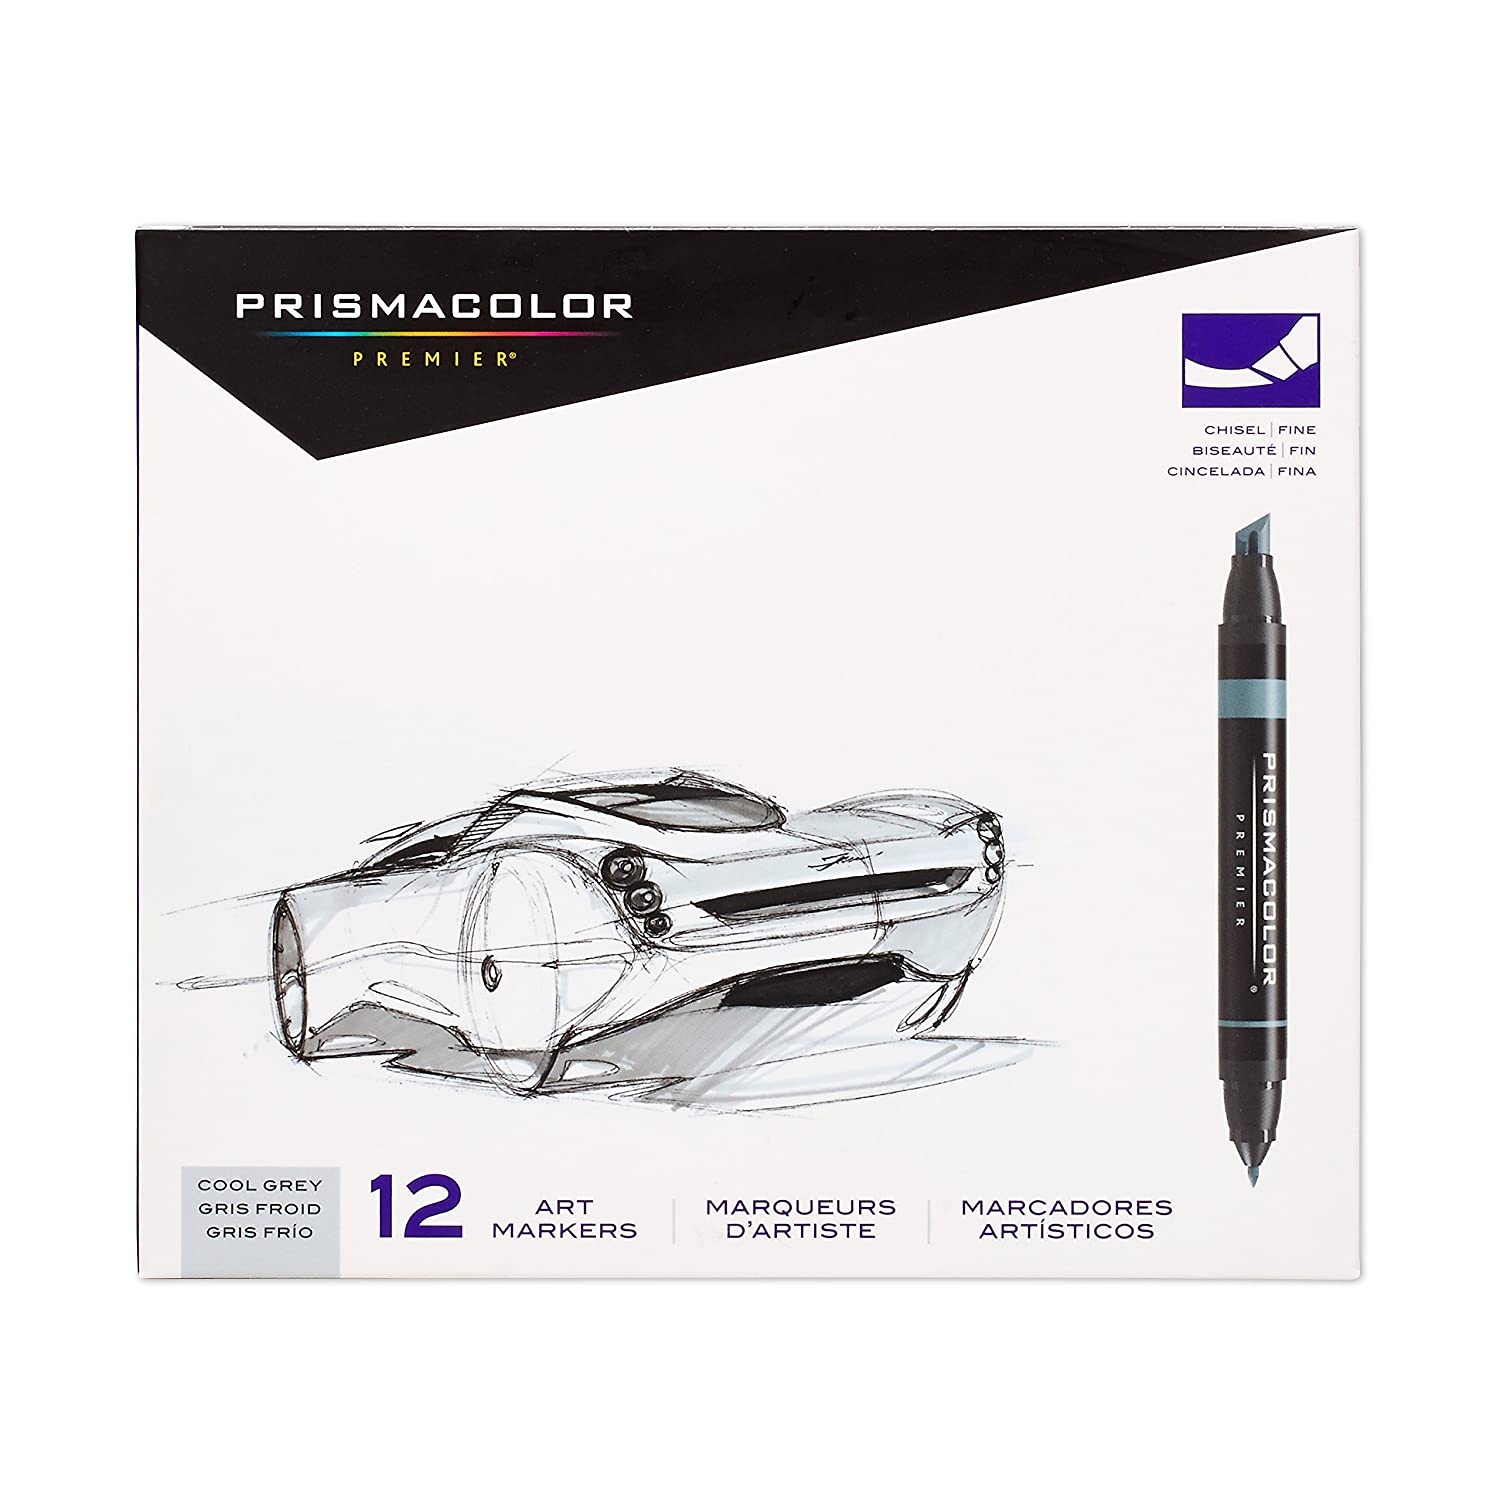 Prismacolor Premier Double-Ended Art Markers, Fine and Chisel Tip, Warm Grey, 12-Count Newell Rubbermaid Office 3623